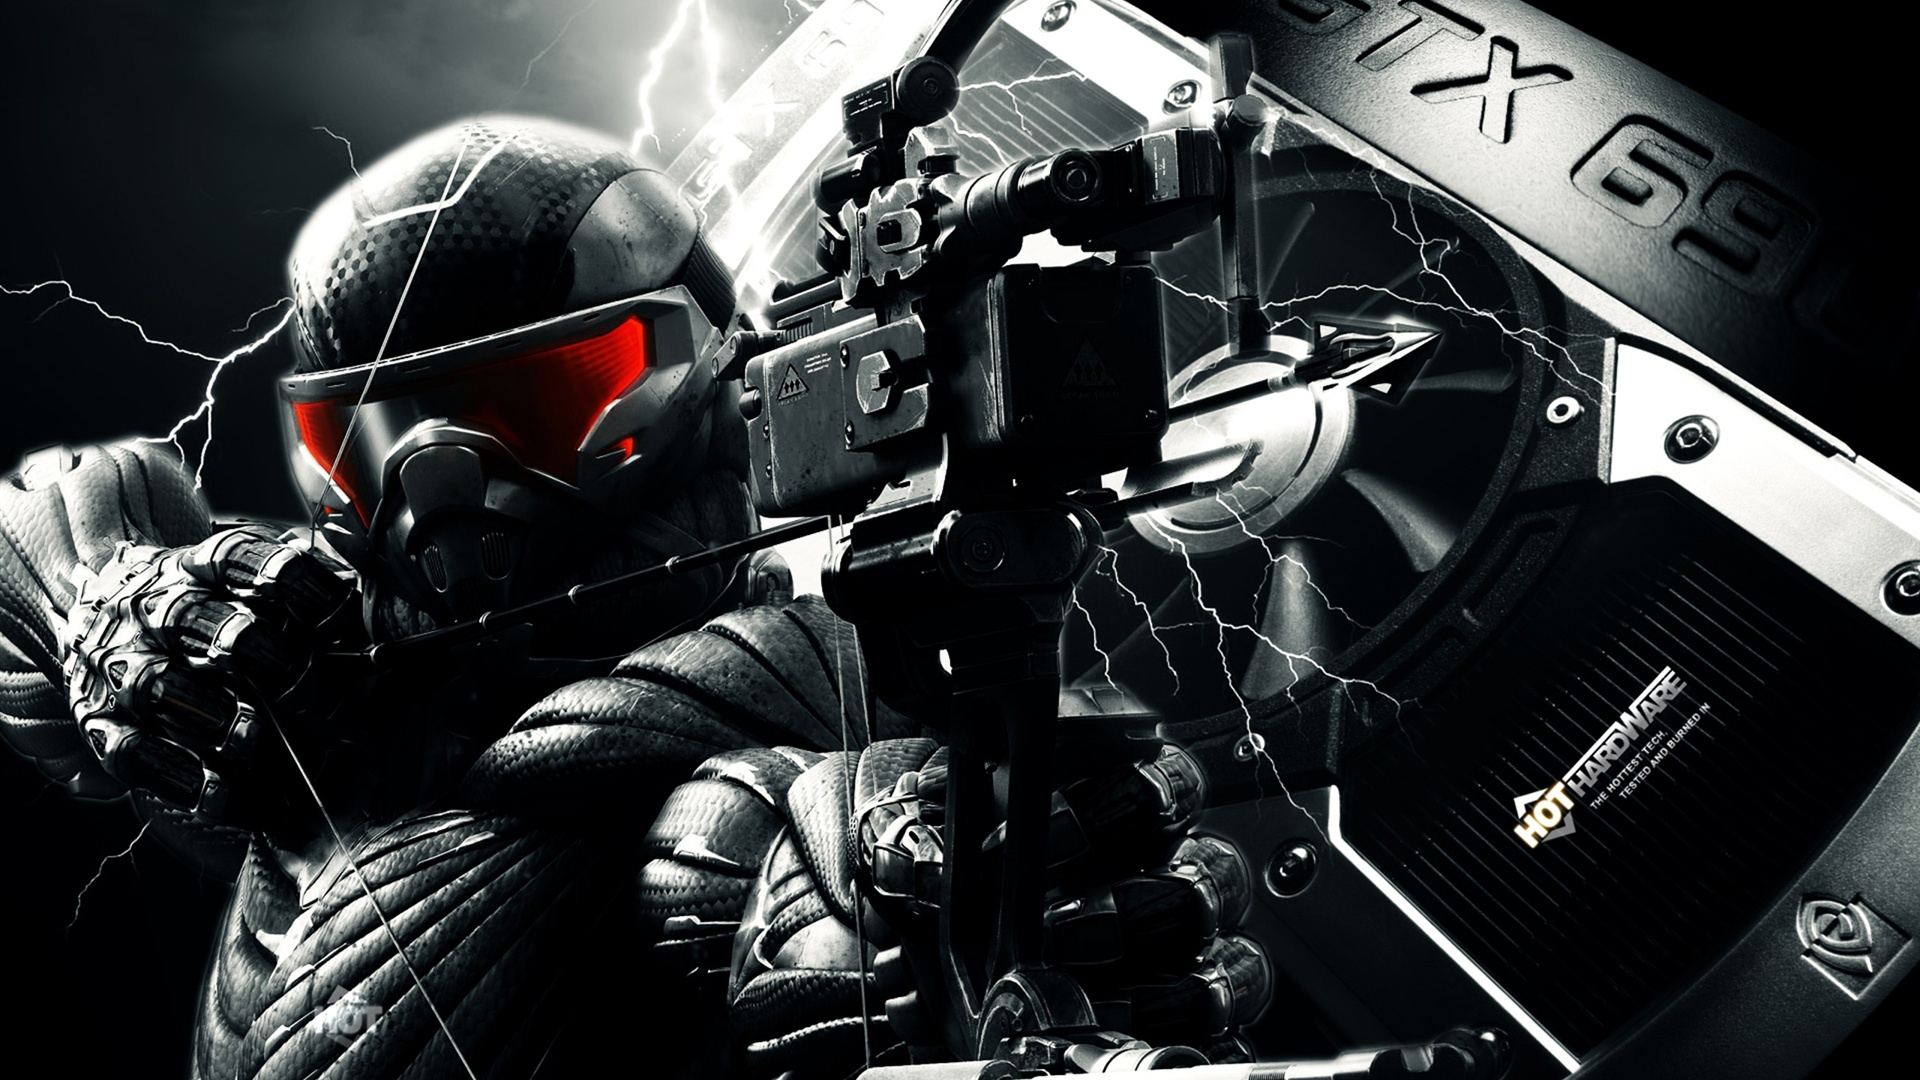 10 Top Crisis 3 Wallpapers Full Hd 1080p For Pc Background: Fonds D'écran Crysis 3 Jeux 2013 2560x1600 HD Image